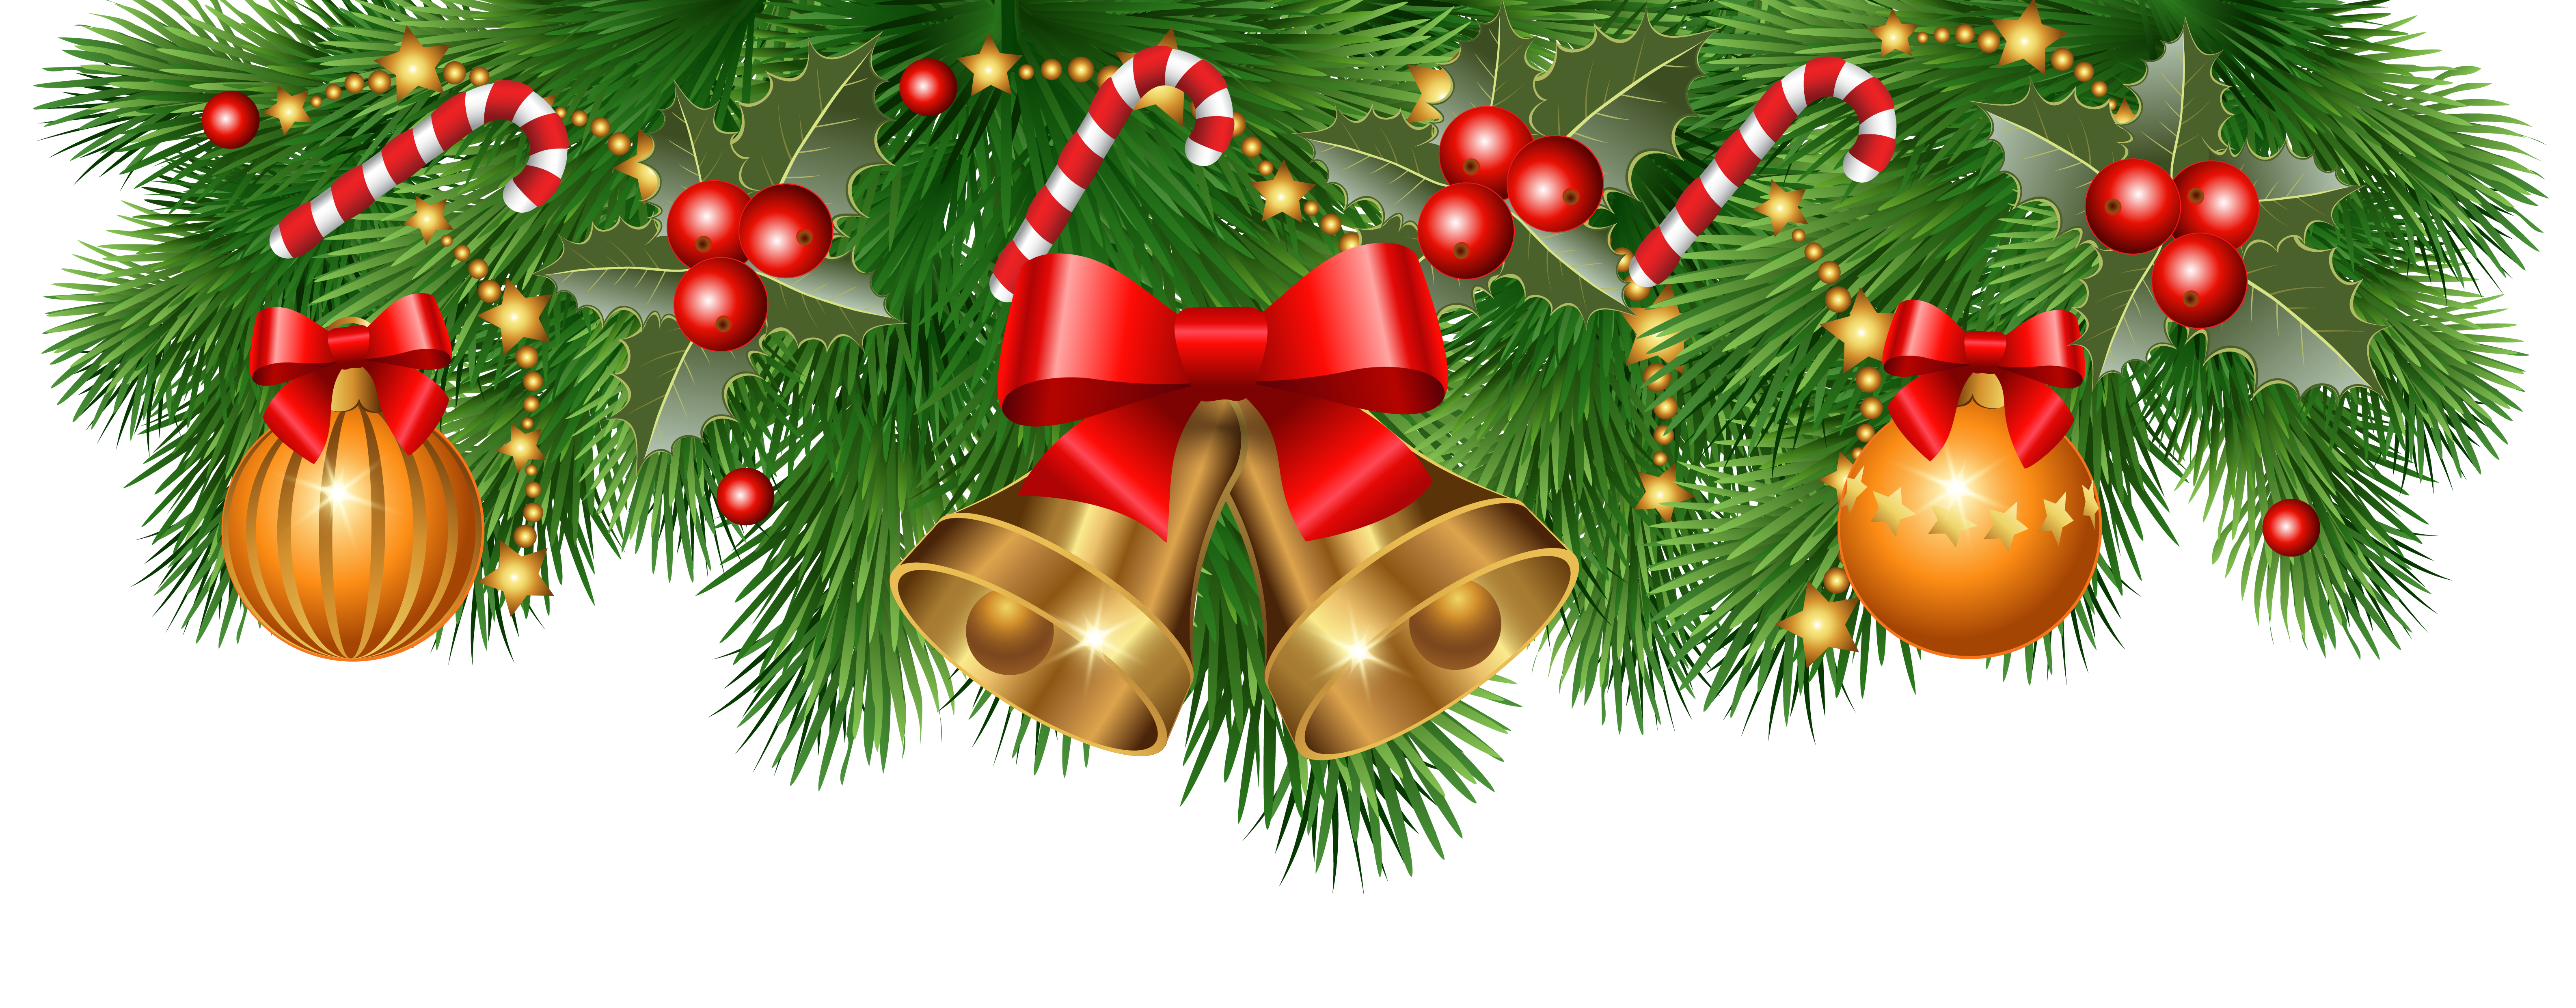 Decoration clipart image gallery. Christmas garland border png